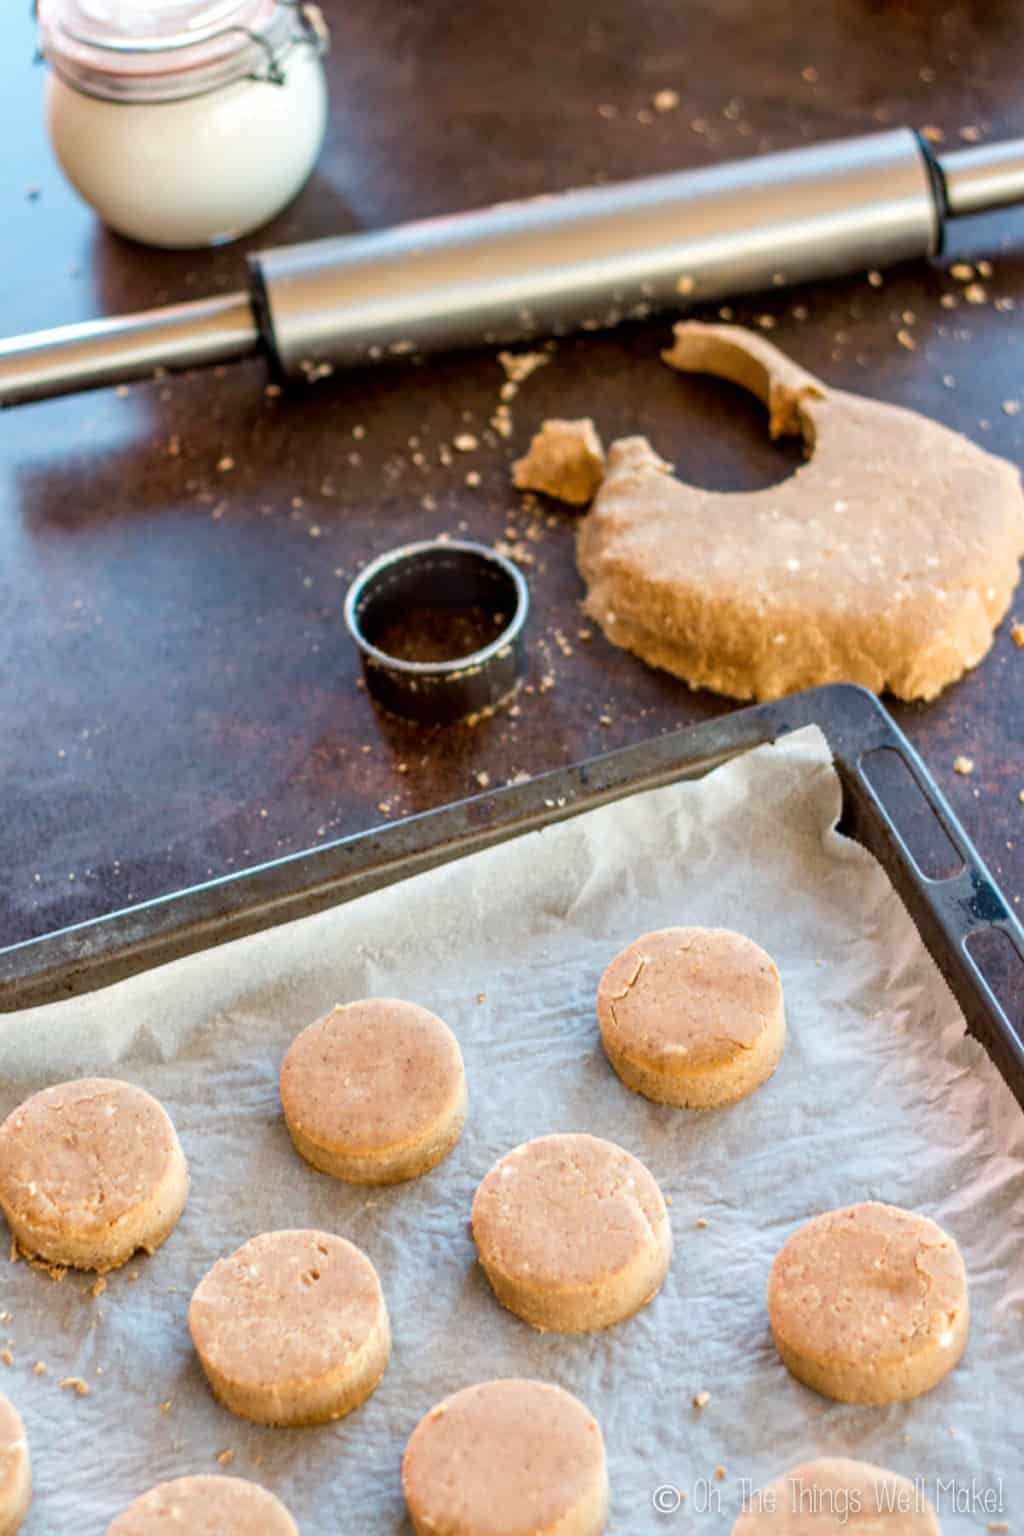 Several pieces of cut mantecados on a baking sheet. On top is a rolling pin, dough with a cut section and a circle cutter.